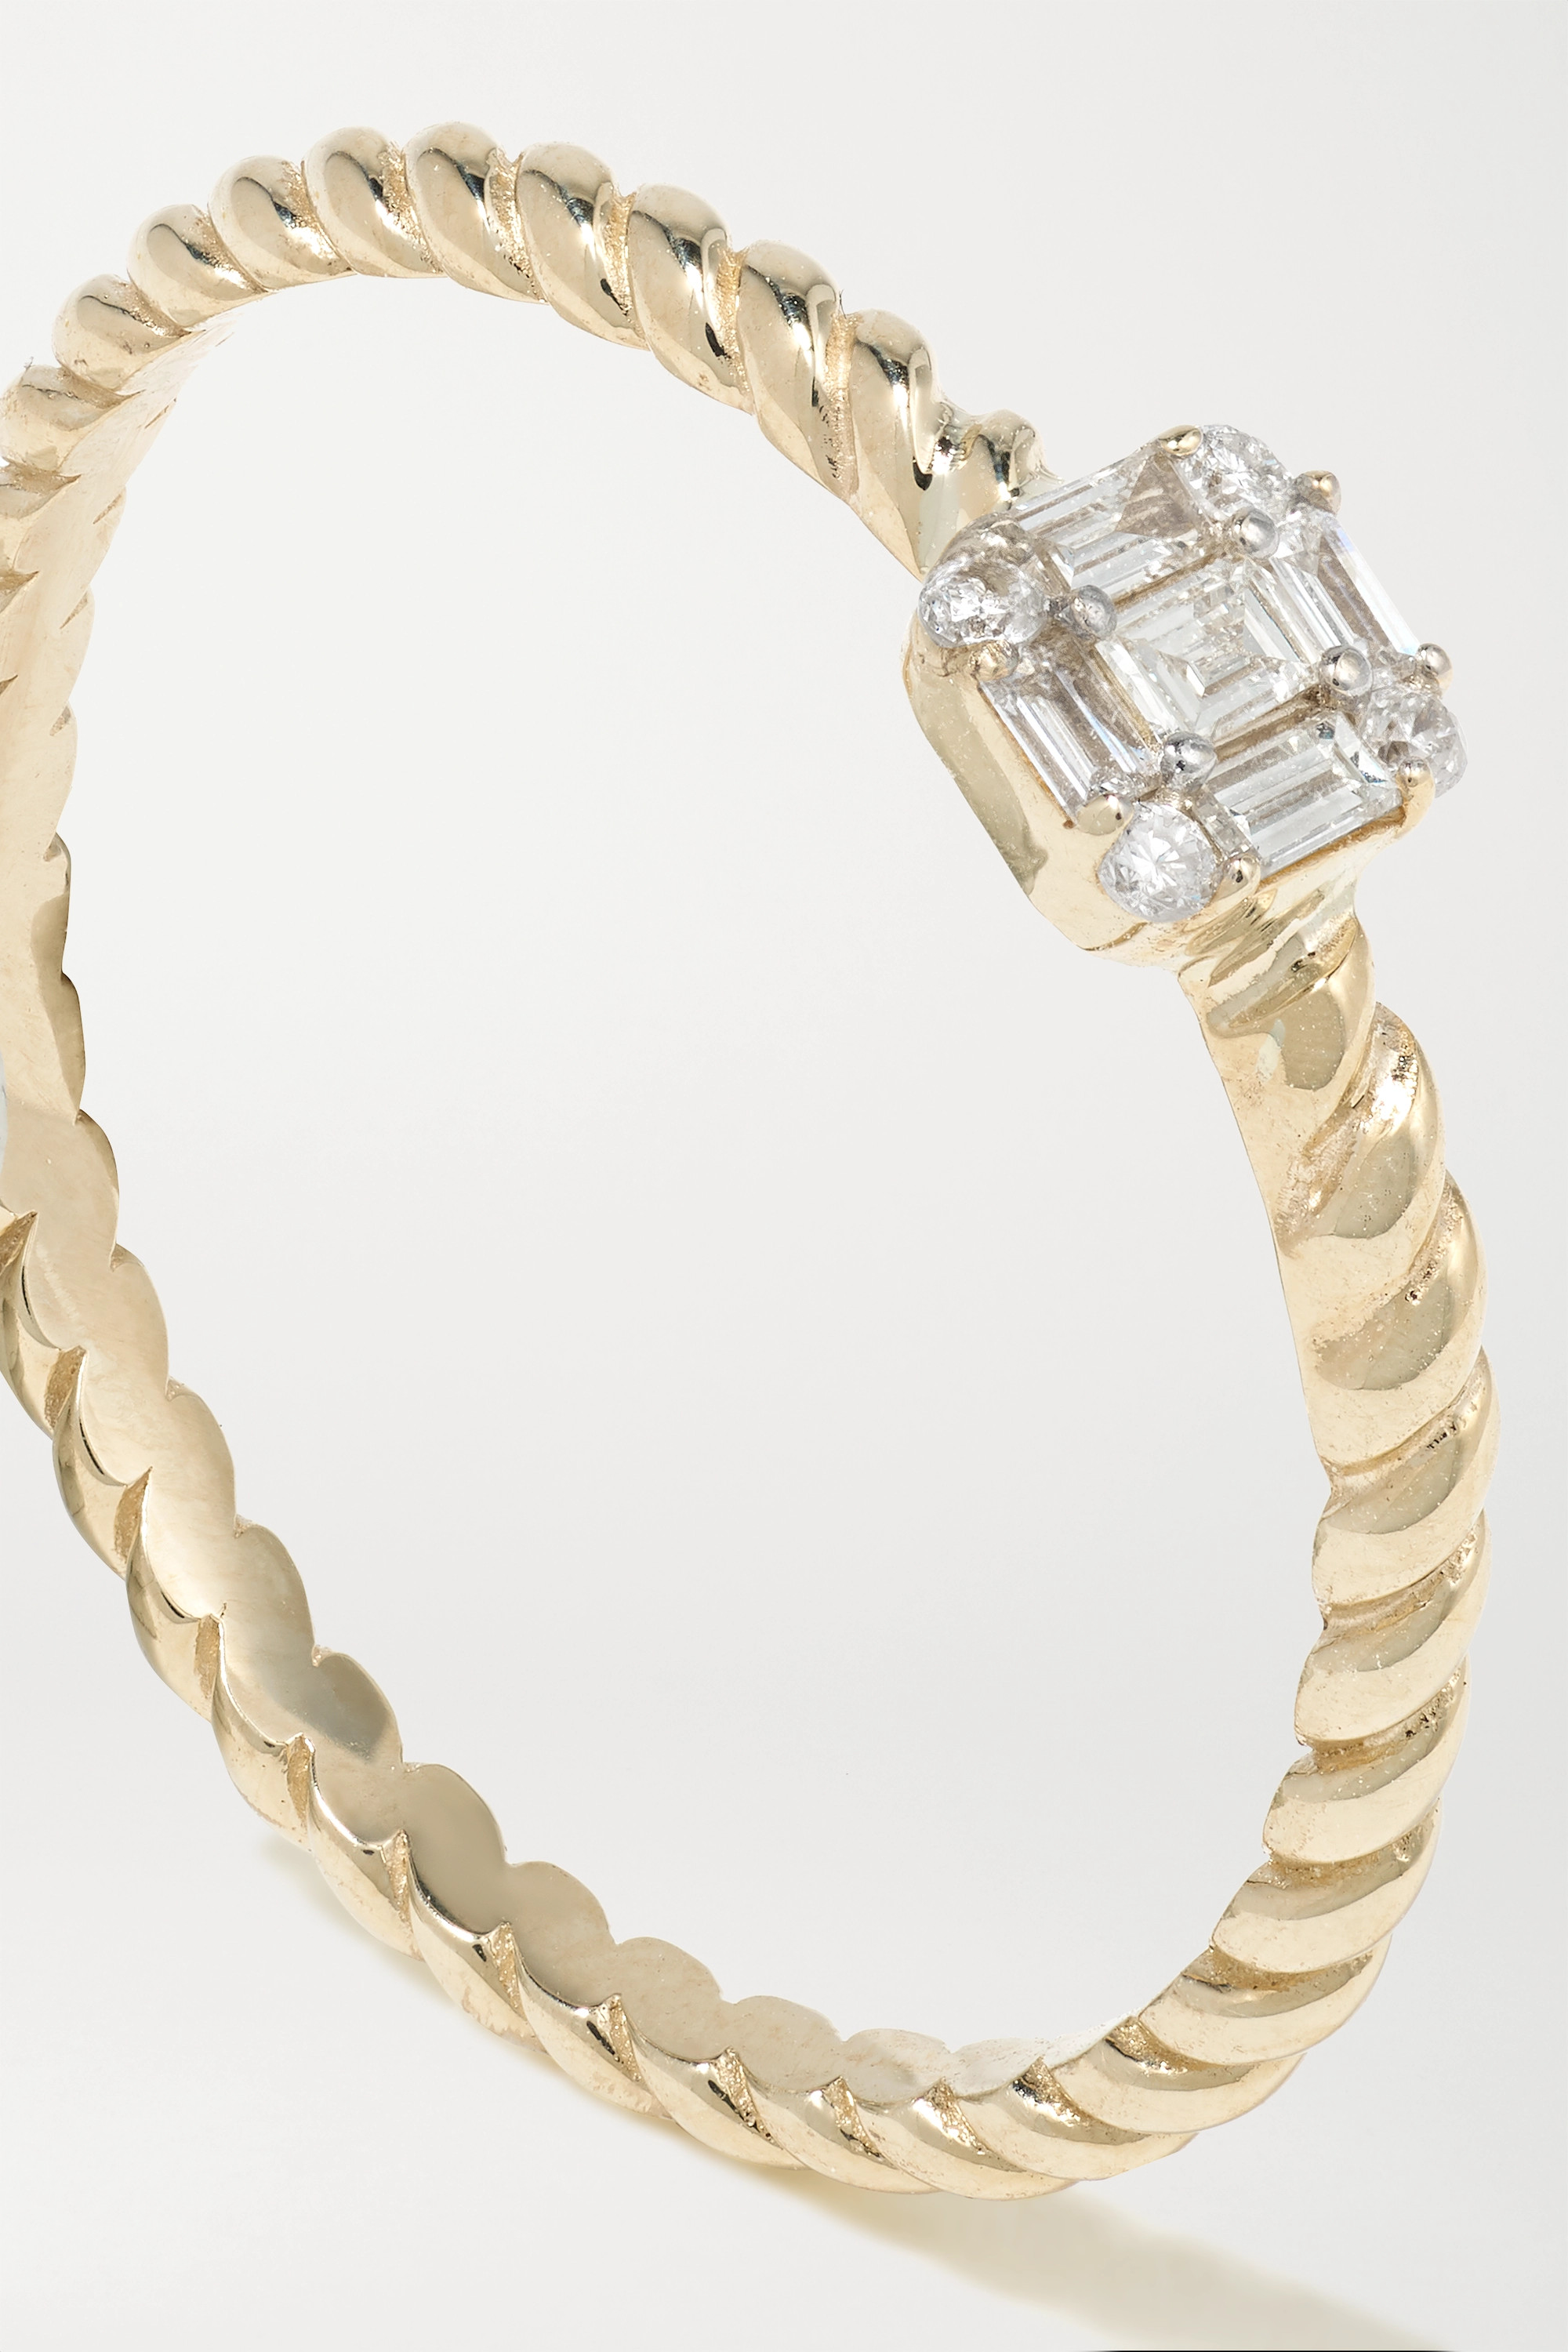 STONE AND STRAND Shield of Strength 9-karat gold diamond ring